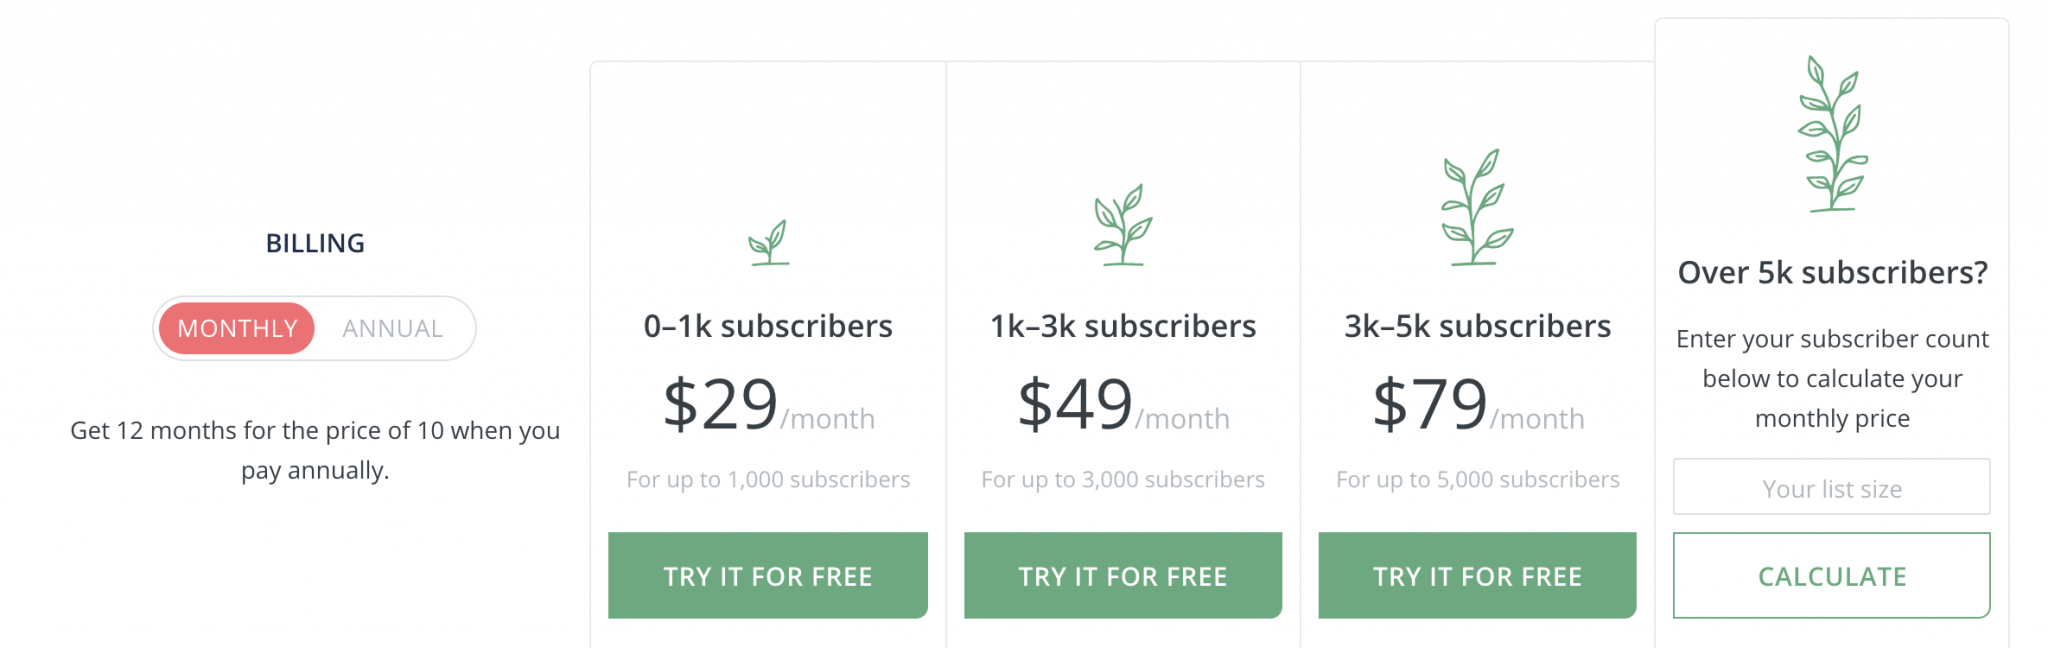 Upgrade Coupon Email Marketing May 2020